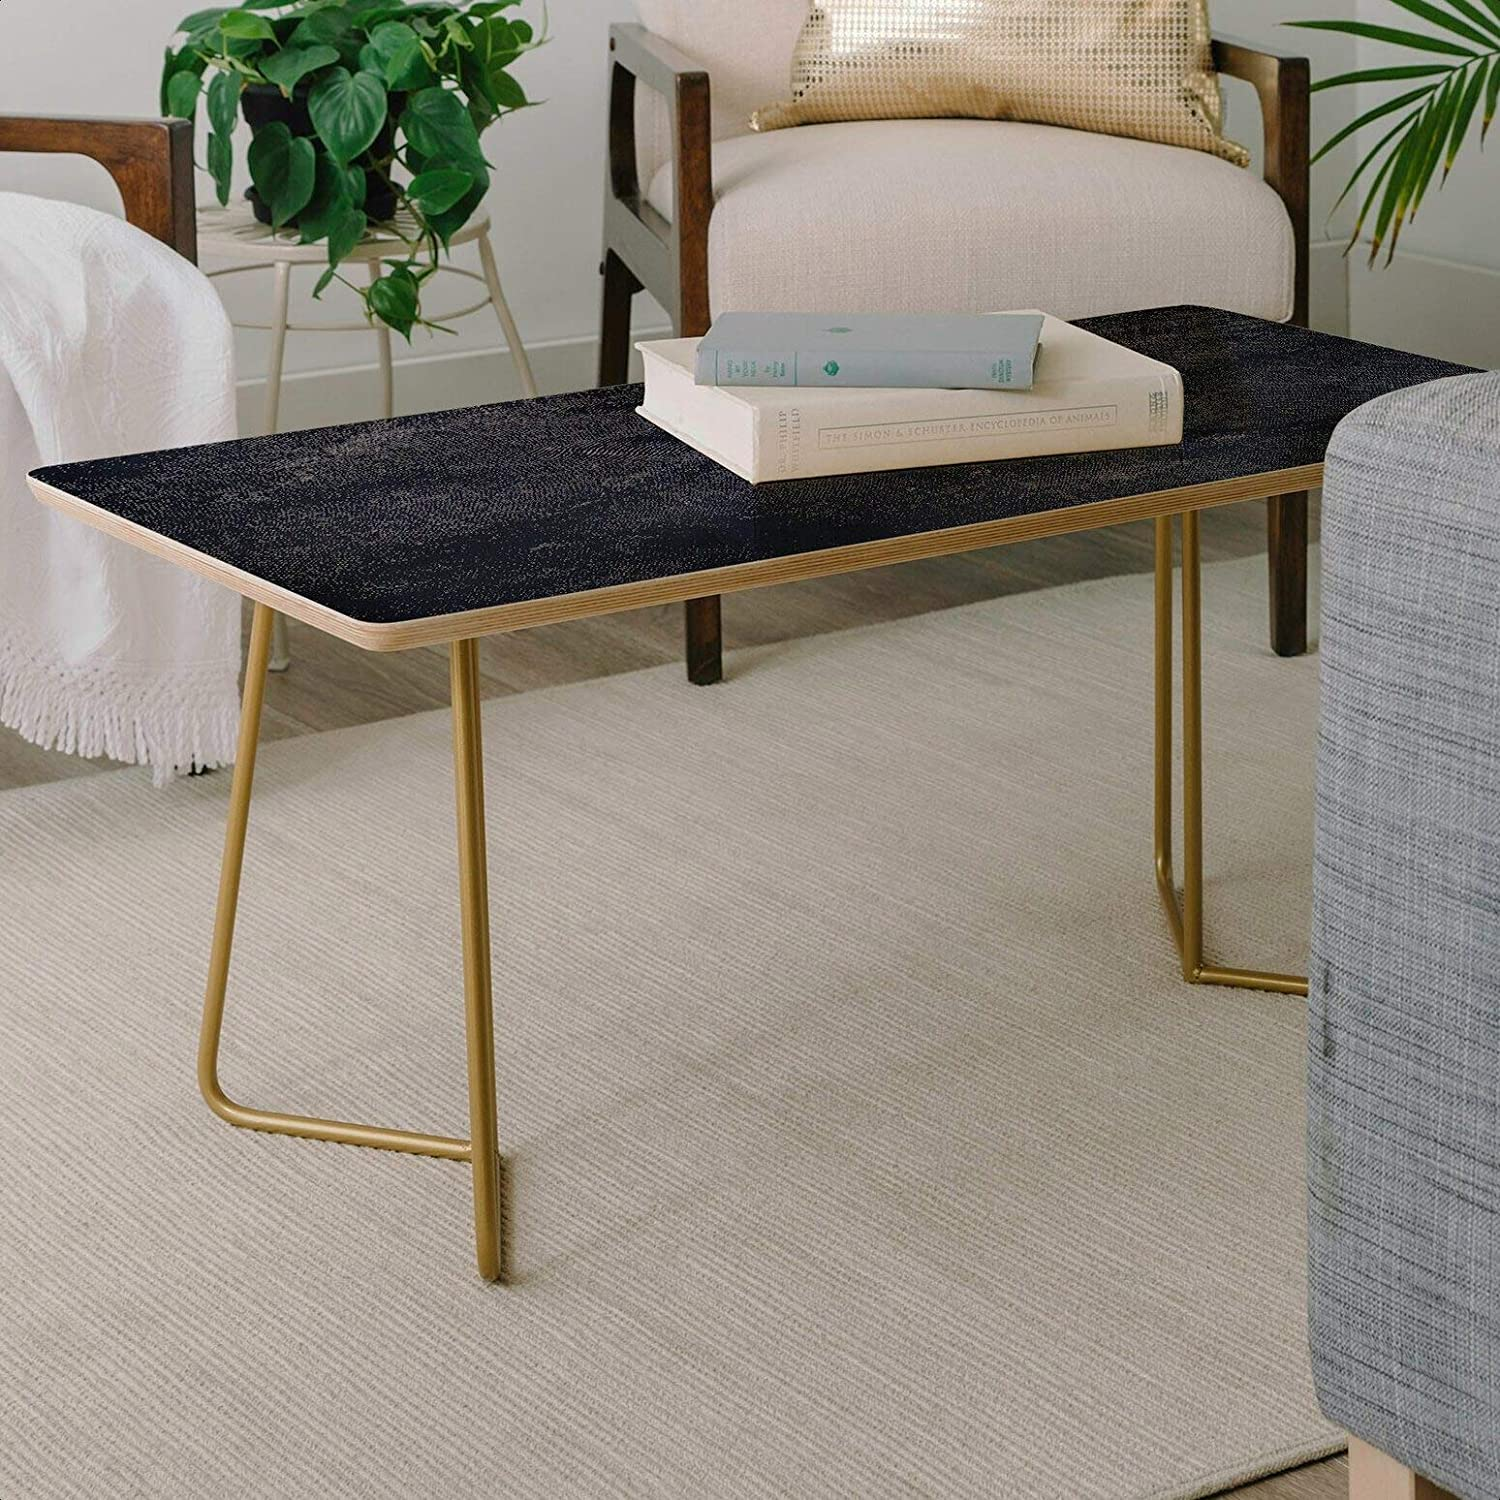 Jacksonville Mall Natalie Baca Translated Jean Baby Coffee Table C Base Top Material: Metal